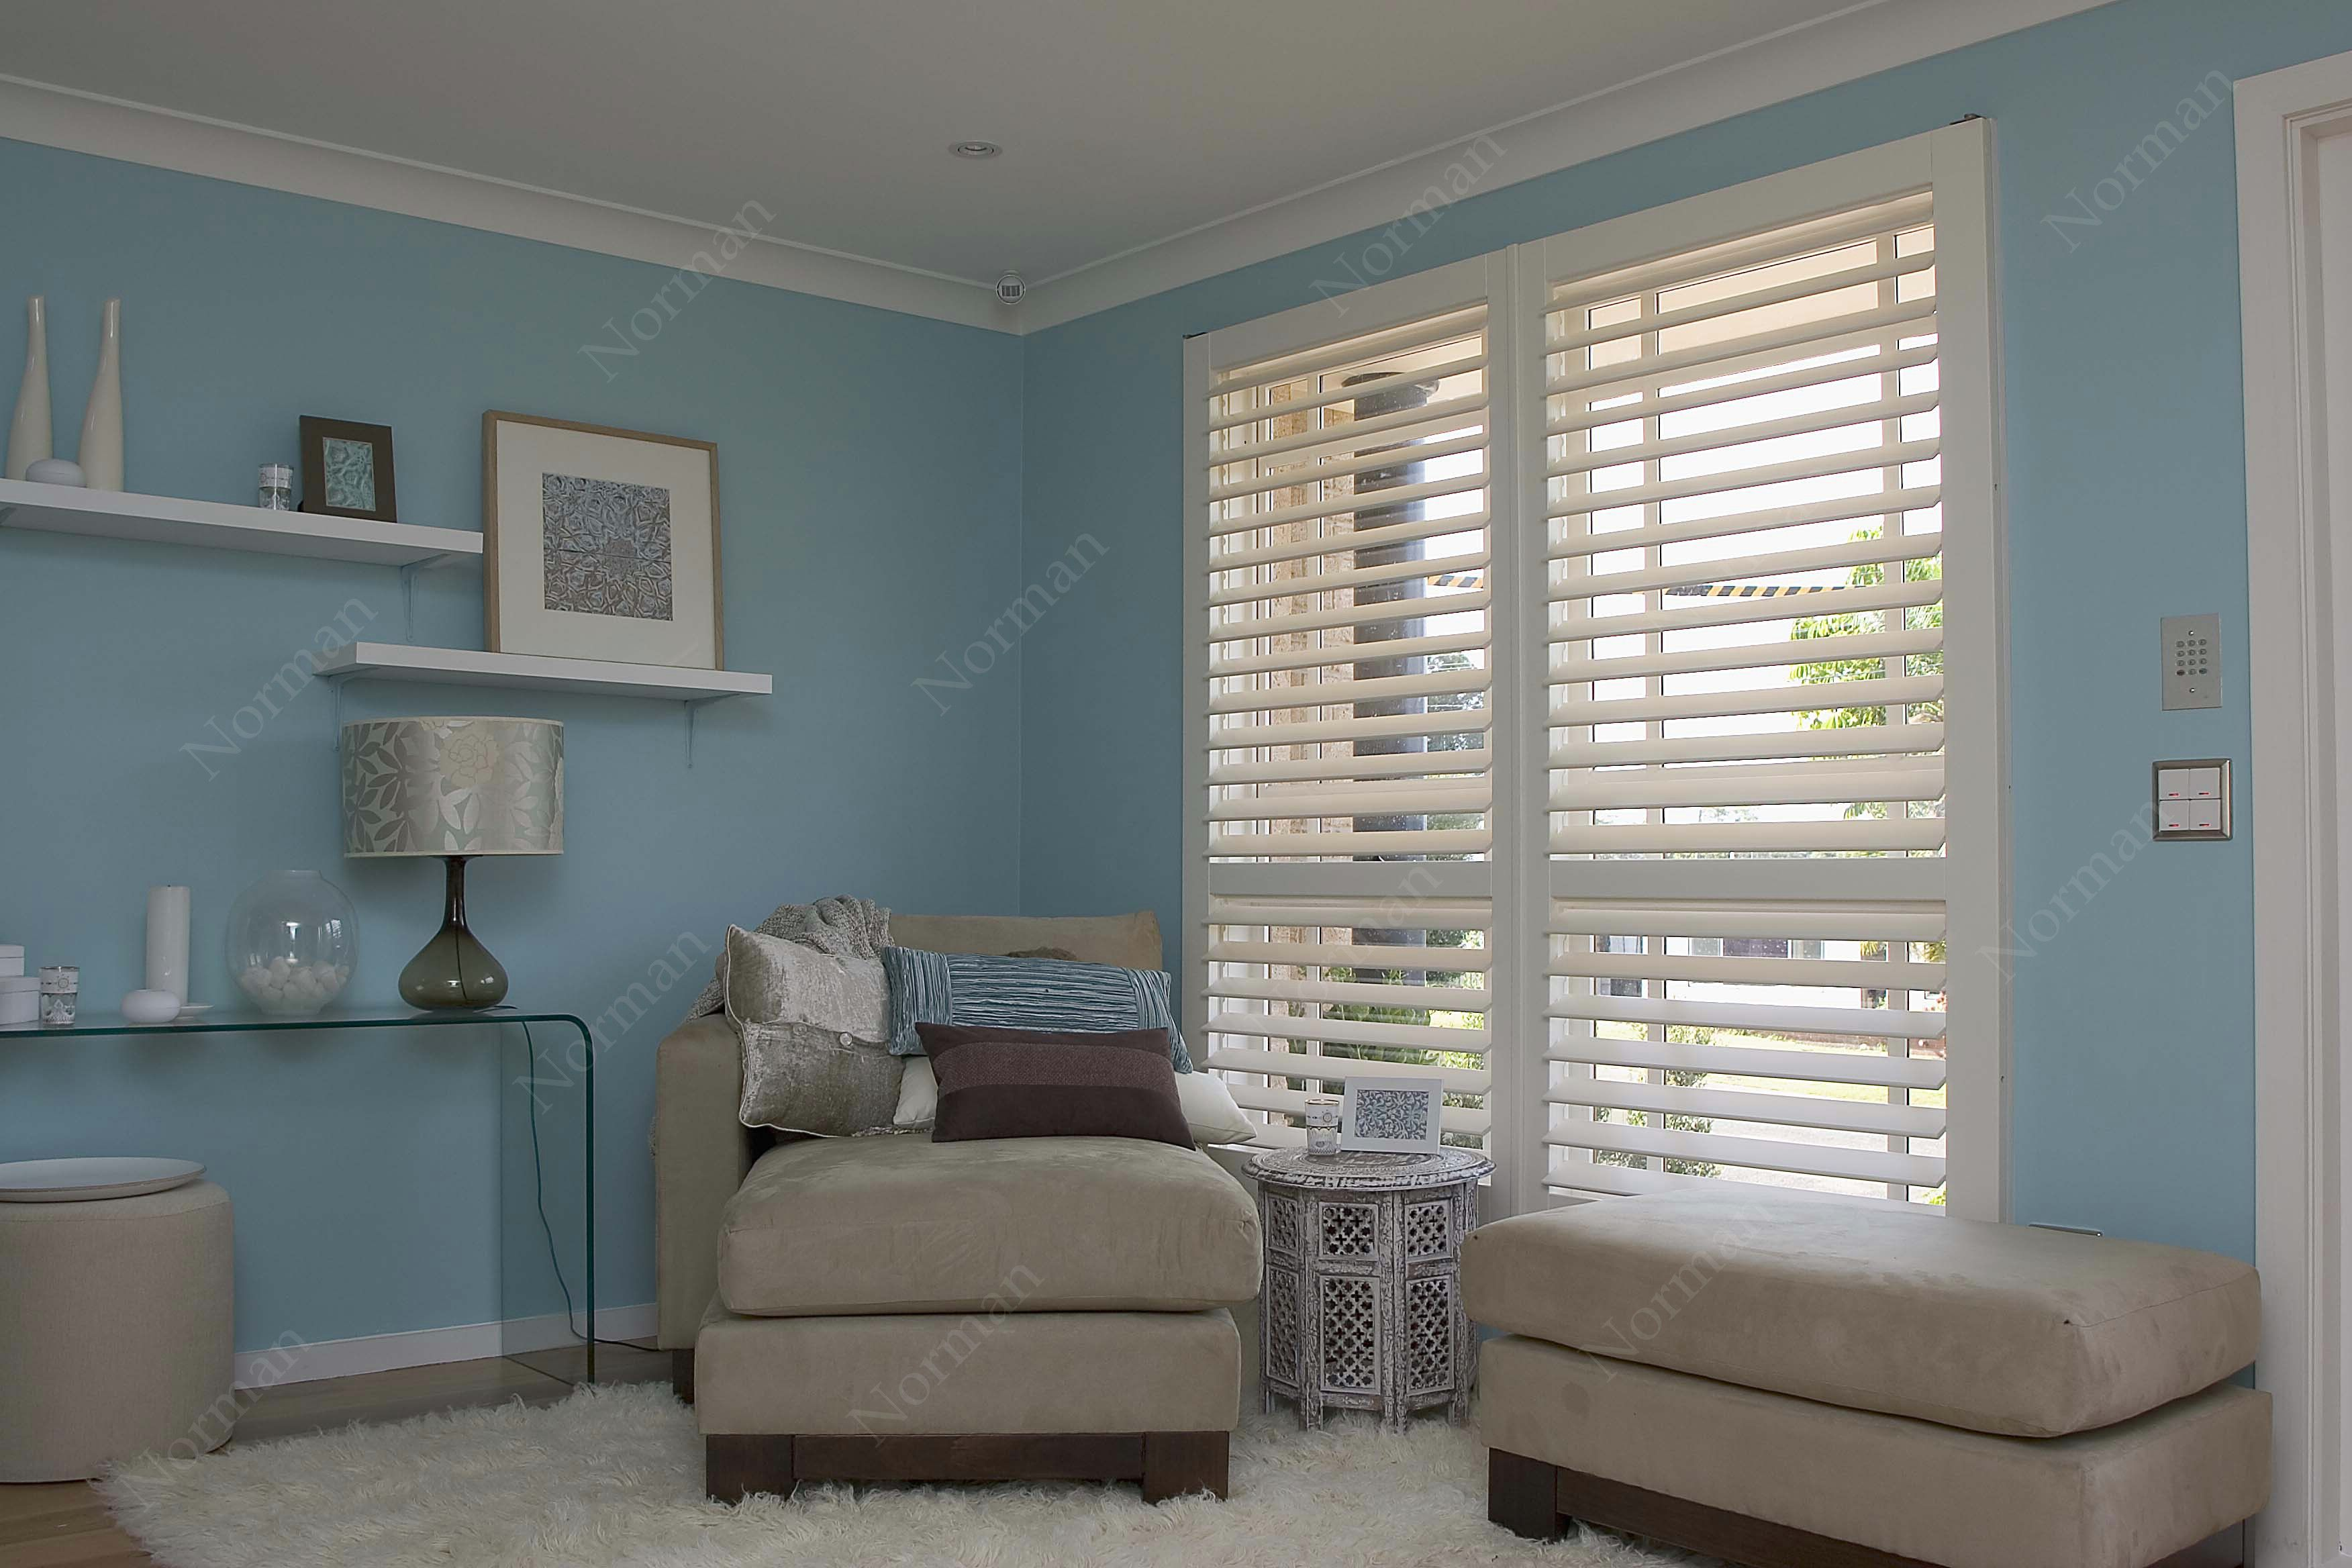 Pin on Tempting plantation shutters